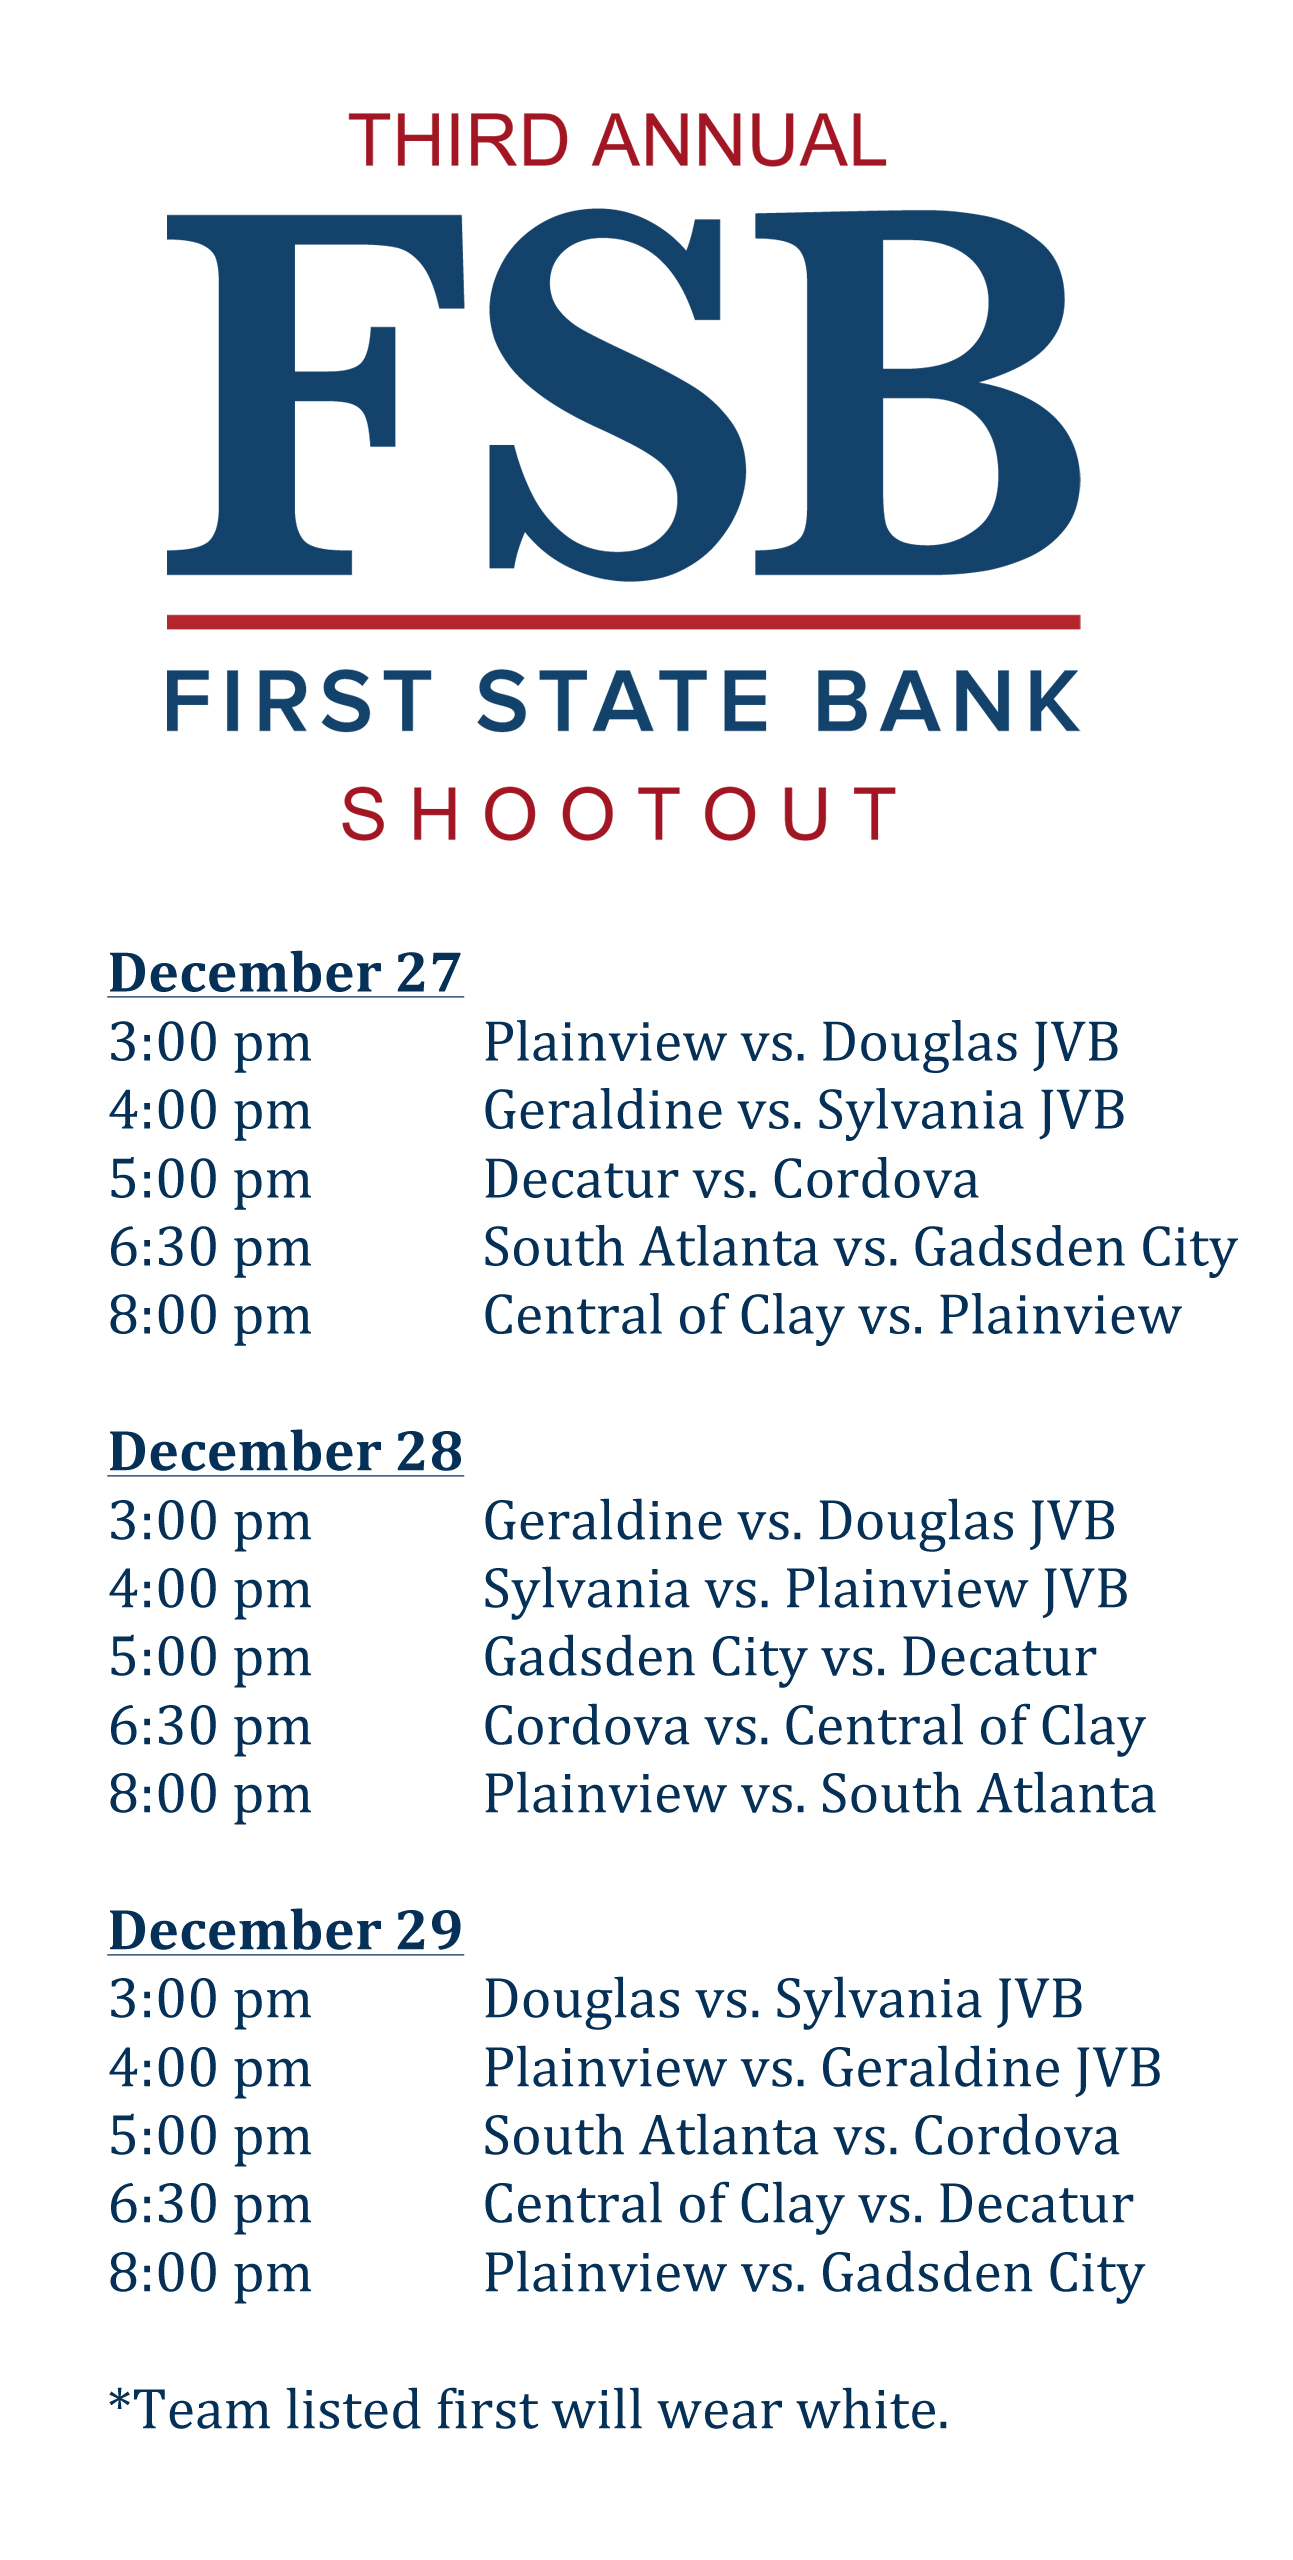 First State Bank Shootout